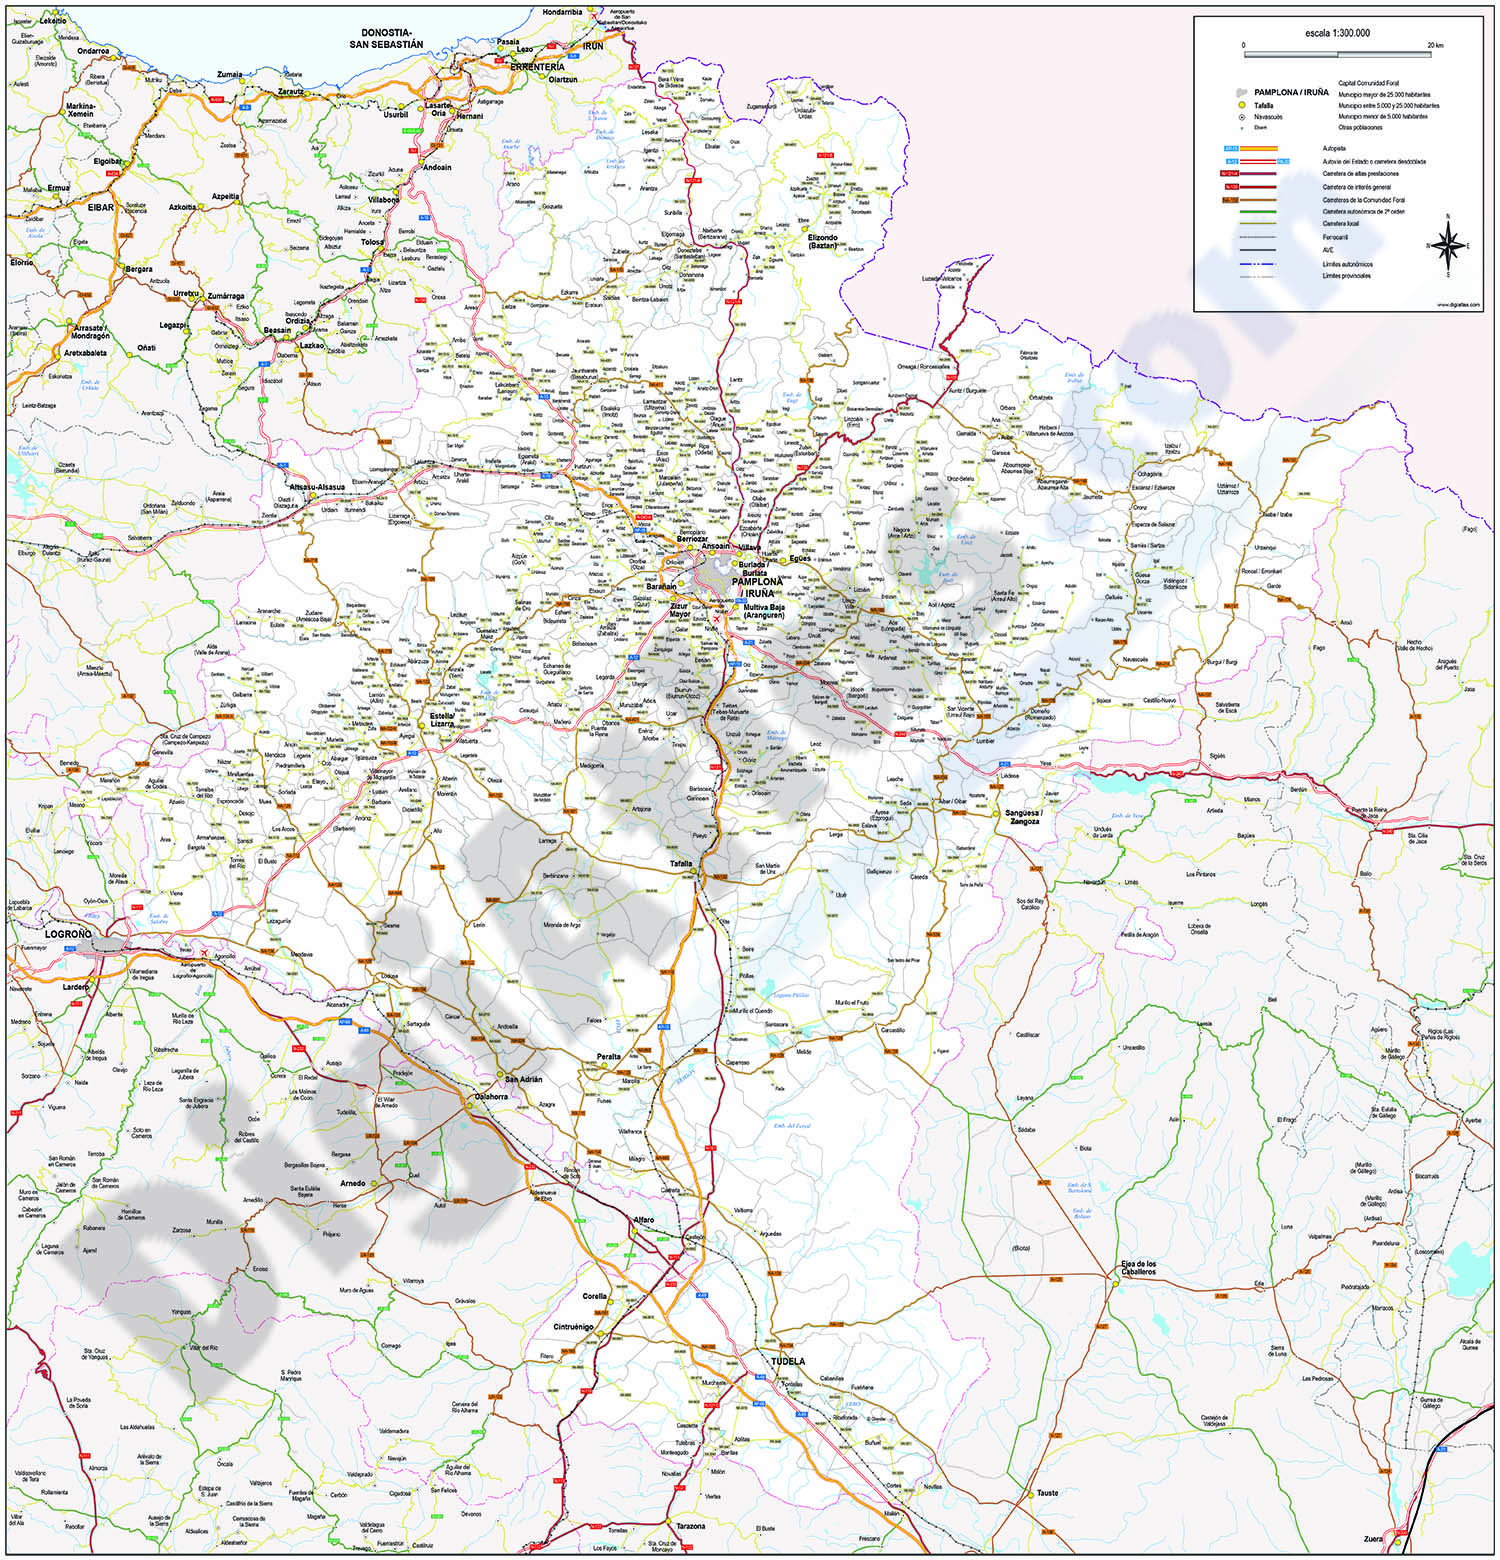 Navarre - Map of Chartered Community of Navarre